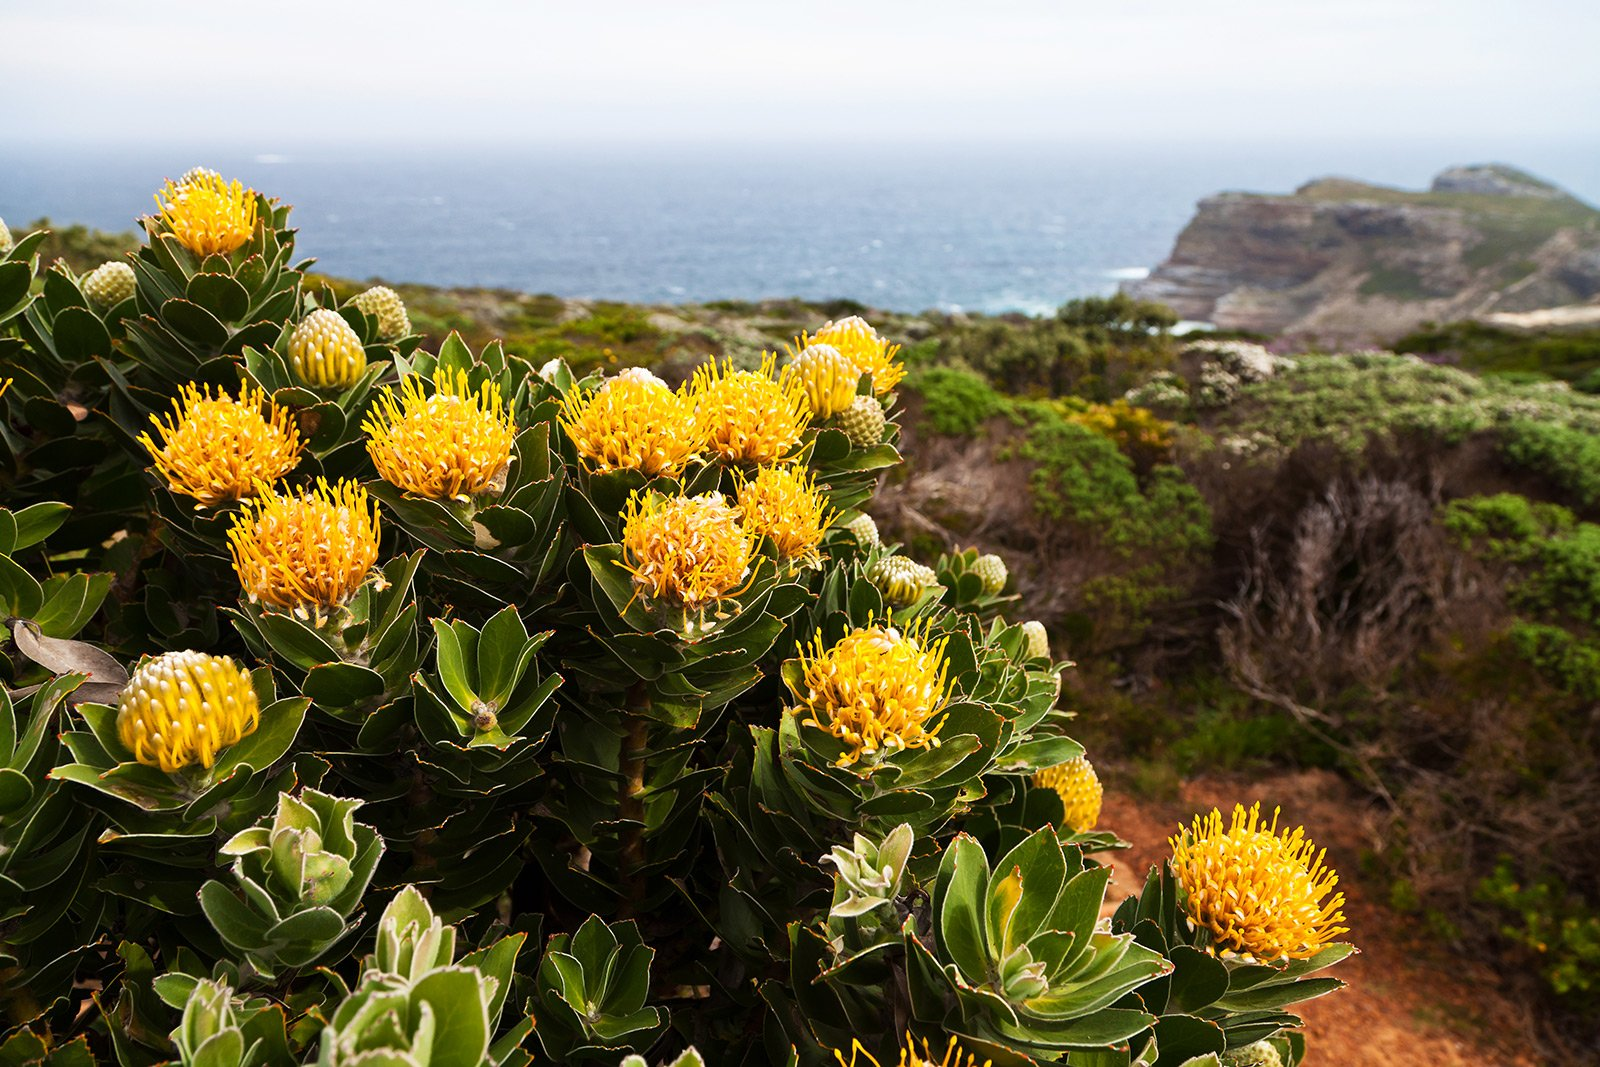 How to find protea – the symbol of the RSA in Cape Town